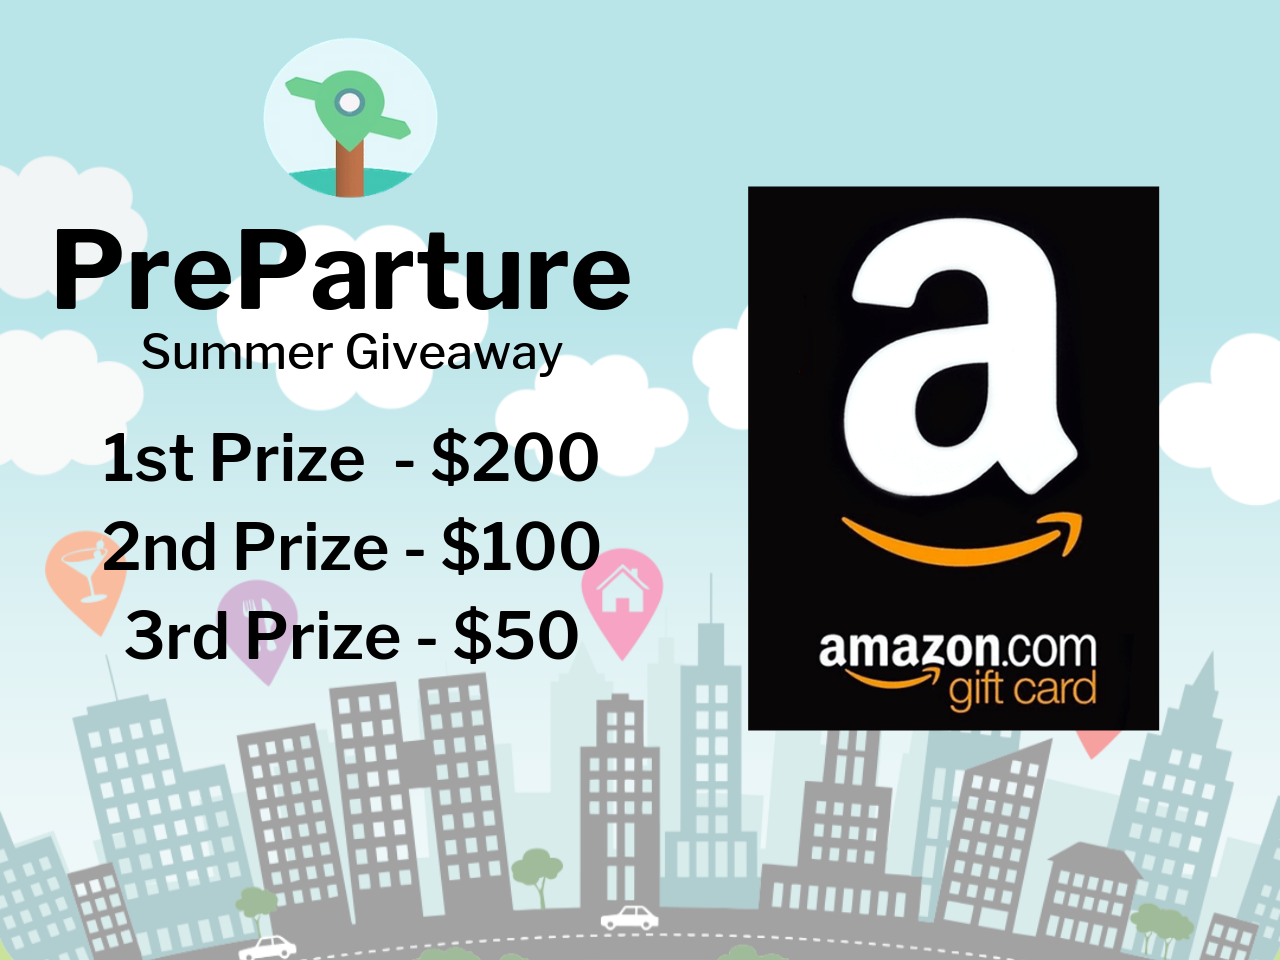 Win a $200 Amazon Gift Card in the PreParture Summer Giveaway